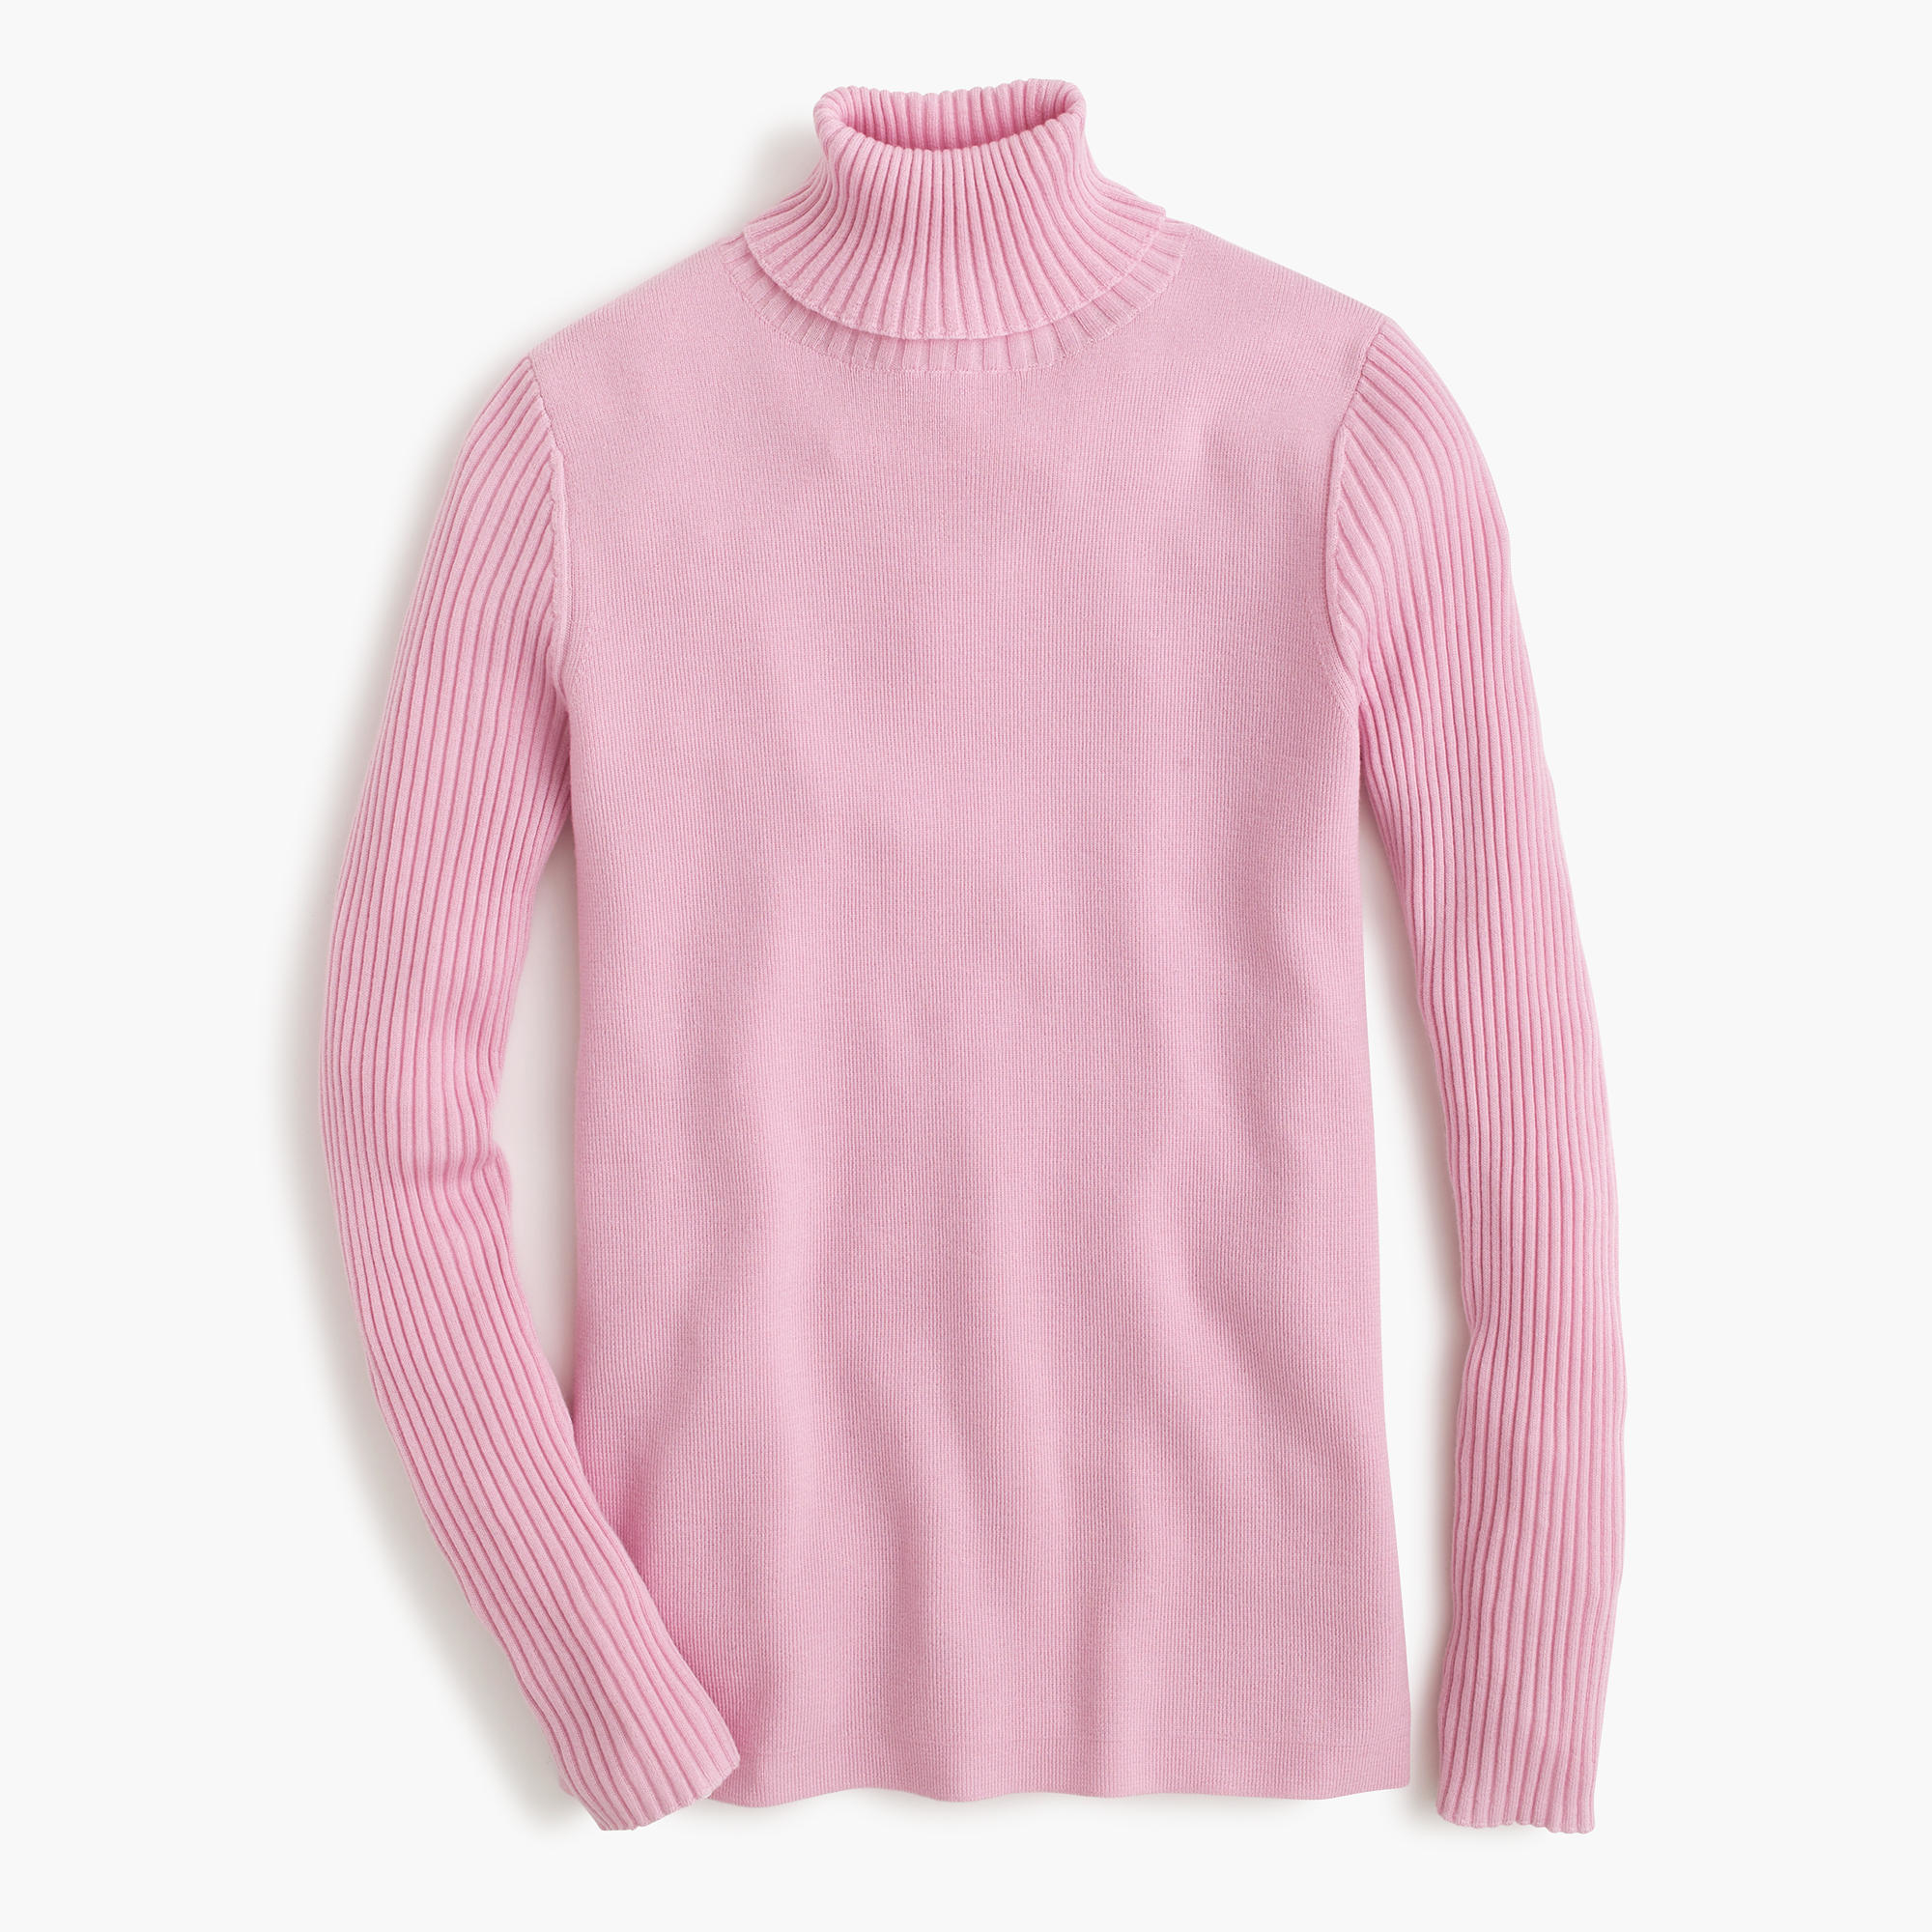 J.crew Merino Turtleneck Sweater With Ribbed Sleeves in Pink | Lyst